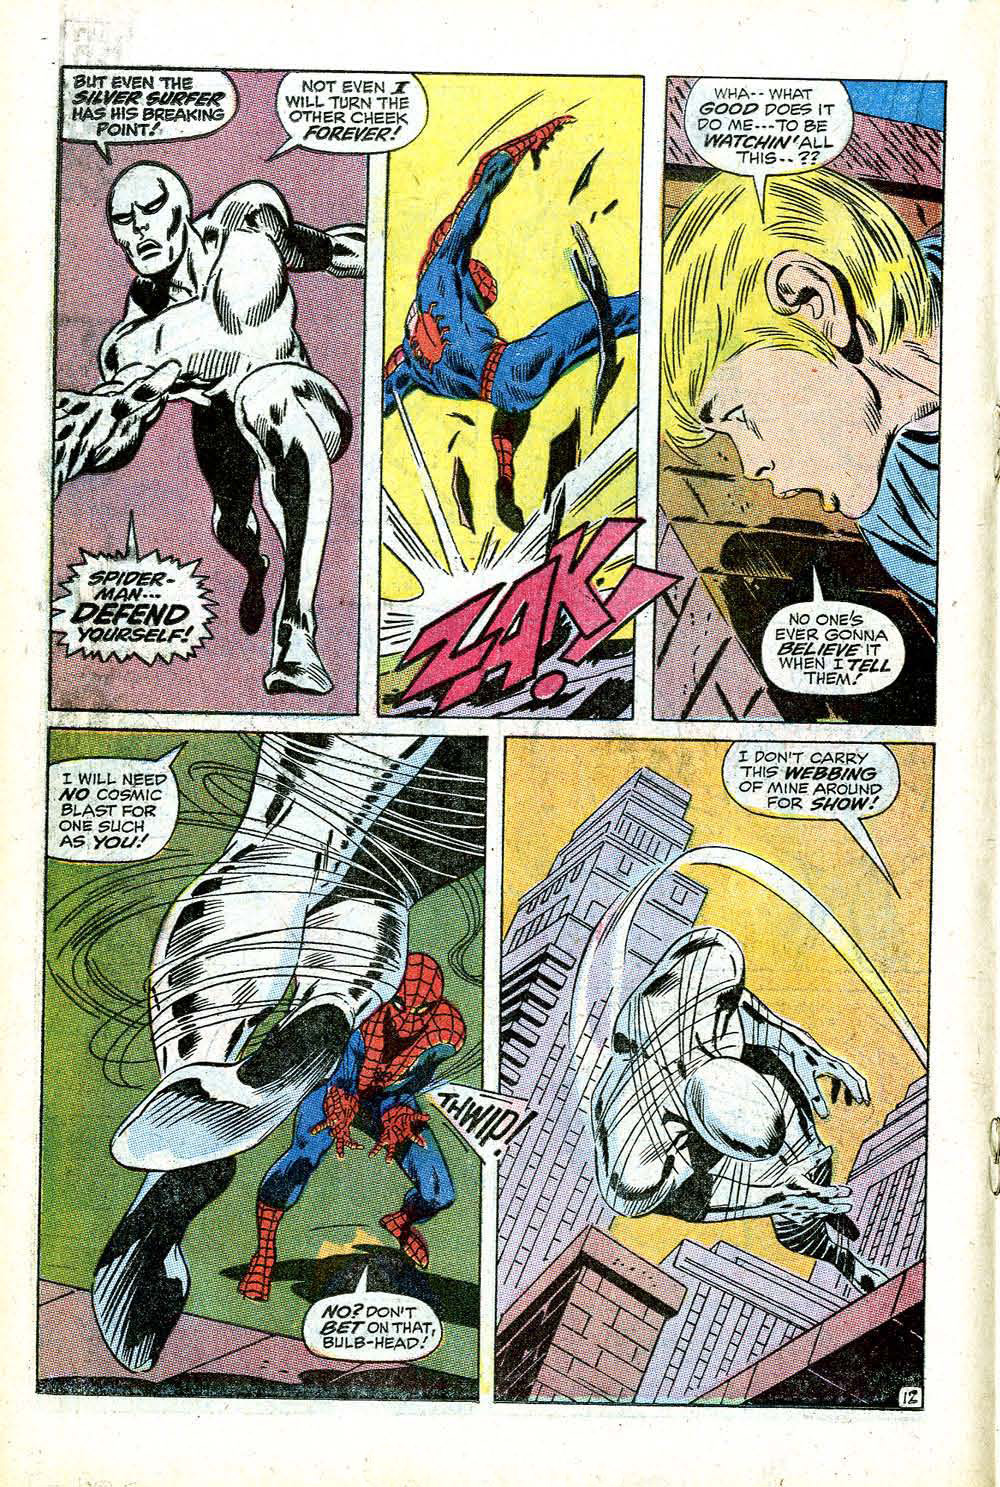 The Bronze Age Of Blogs Silver Surfer Vs Spider Man Hi Hansithe Codes Do Point To An Electrical Problem With Transfer John Buscema Hated Drawing Superheroes He Also Cityscapes And People In Modern Dress You Can Tell Cant